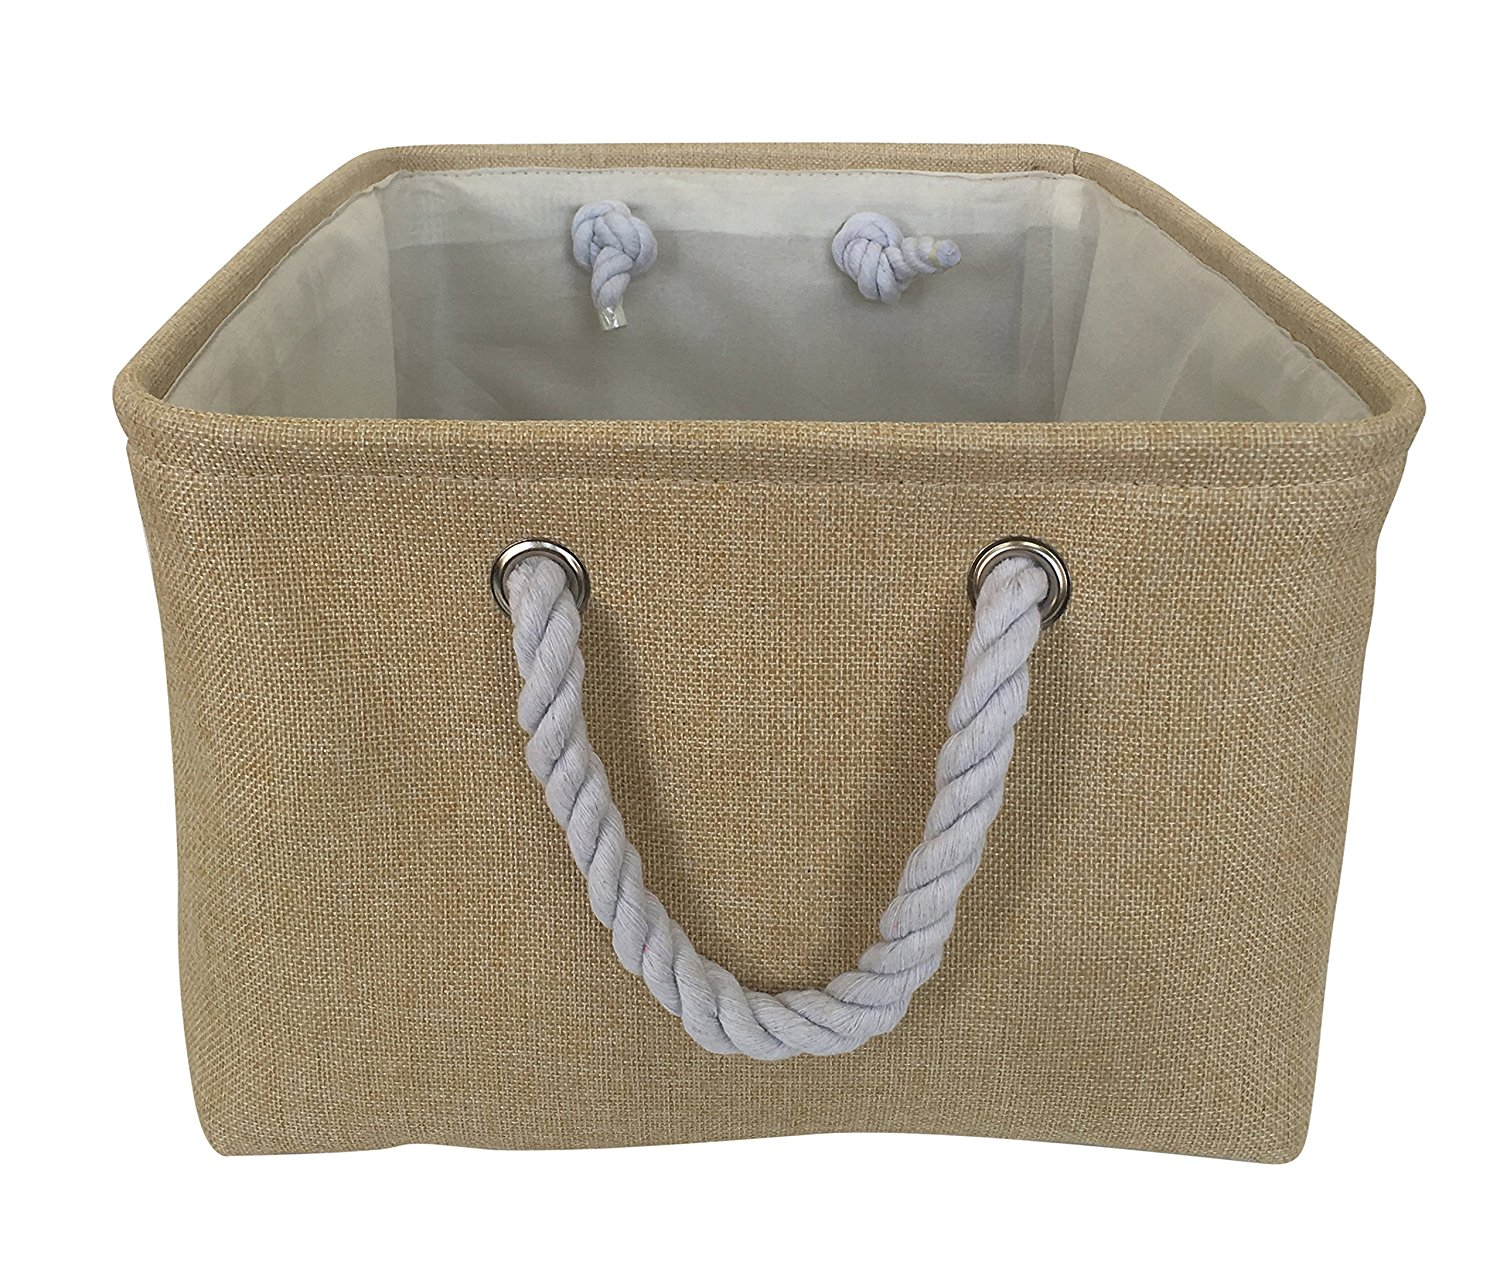 Rectangle Fabric Bin Storage Basket With Rope Handles For Clothes Storage ,Laundry,Toy Organizer